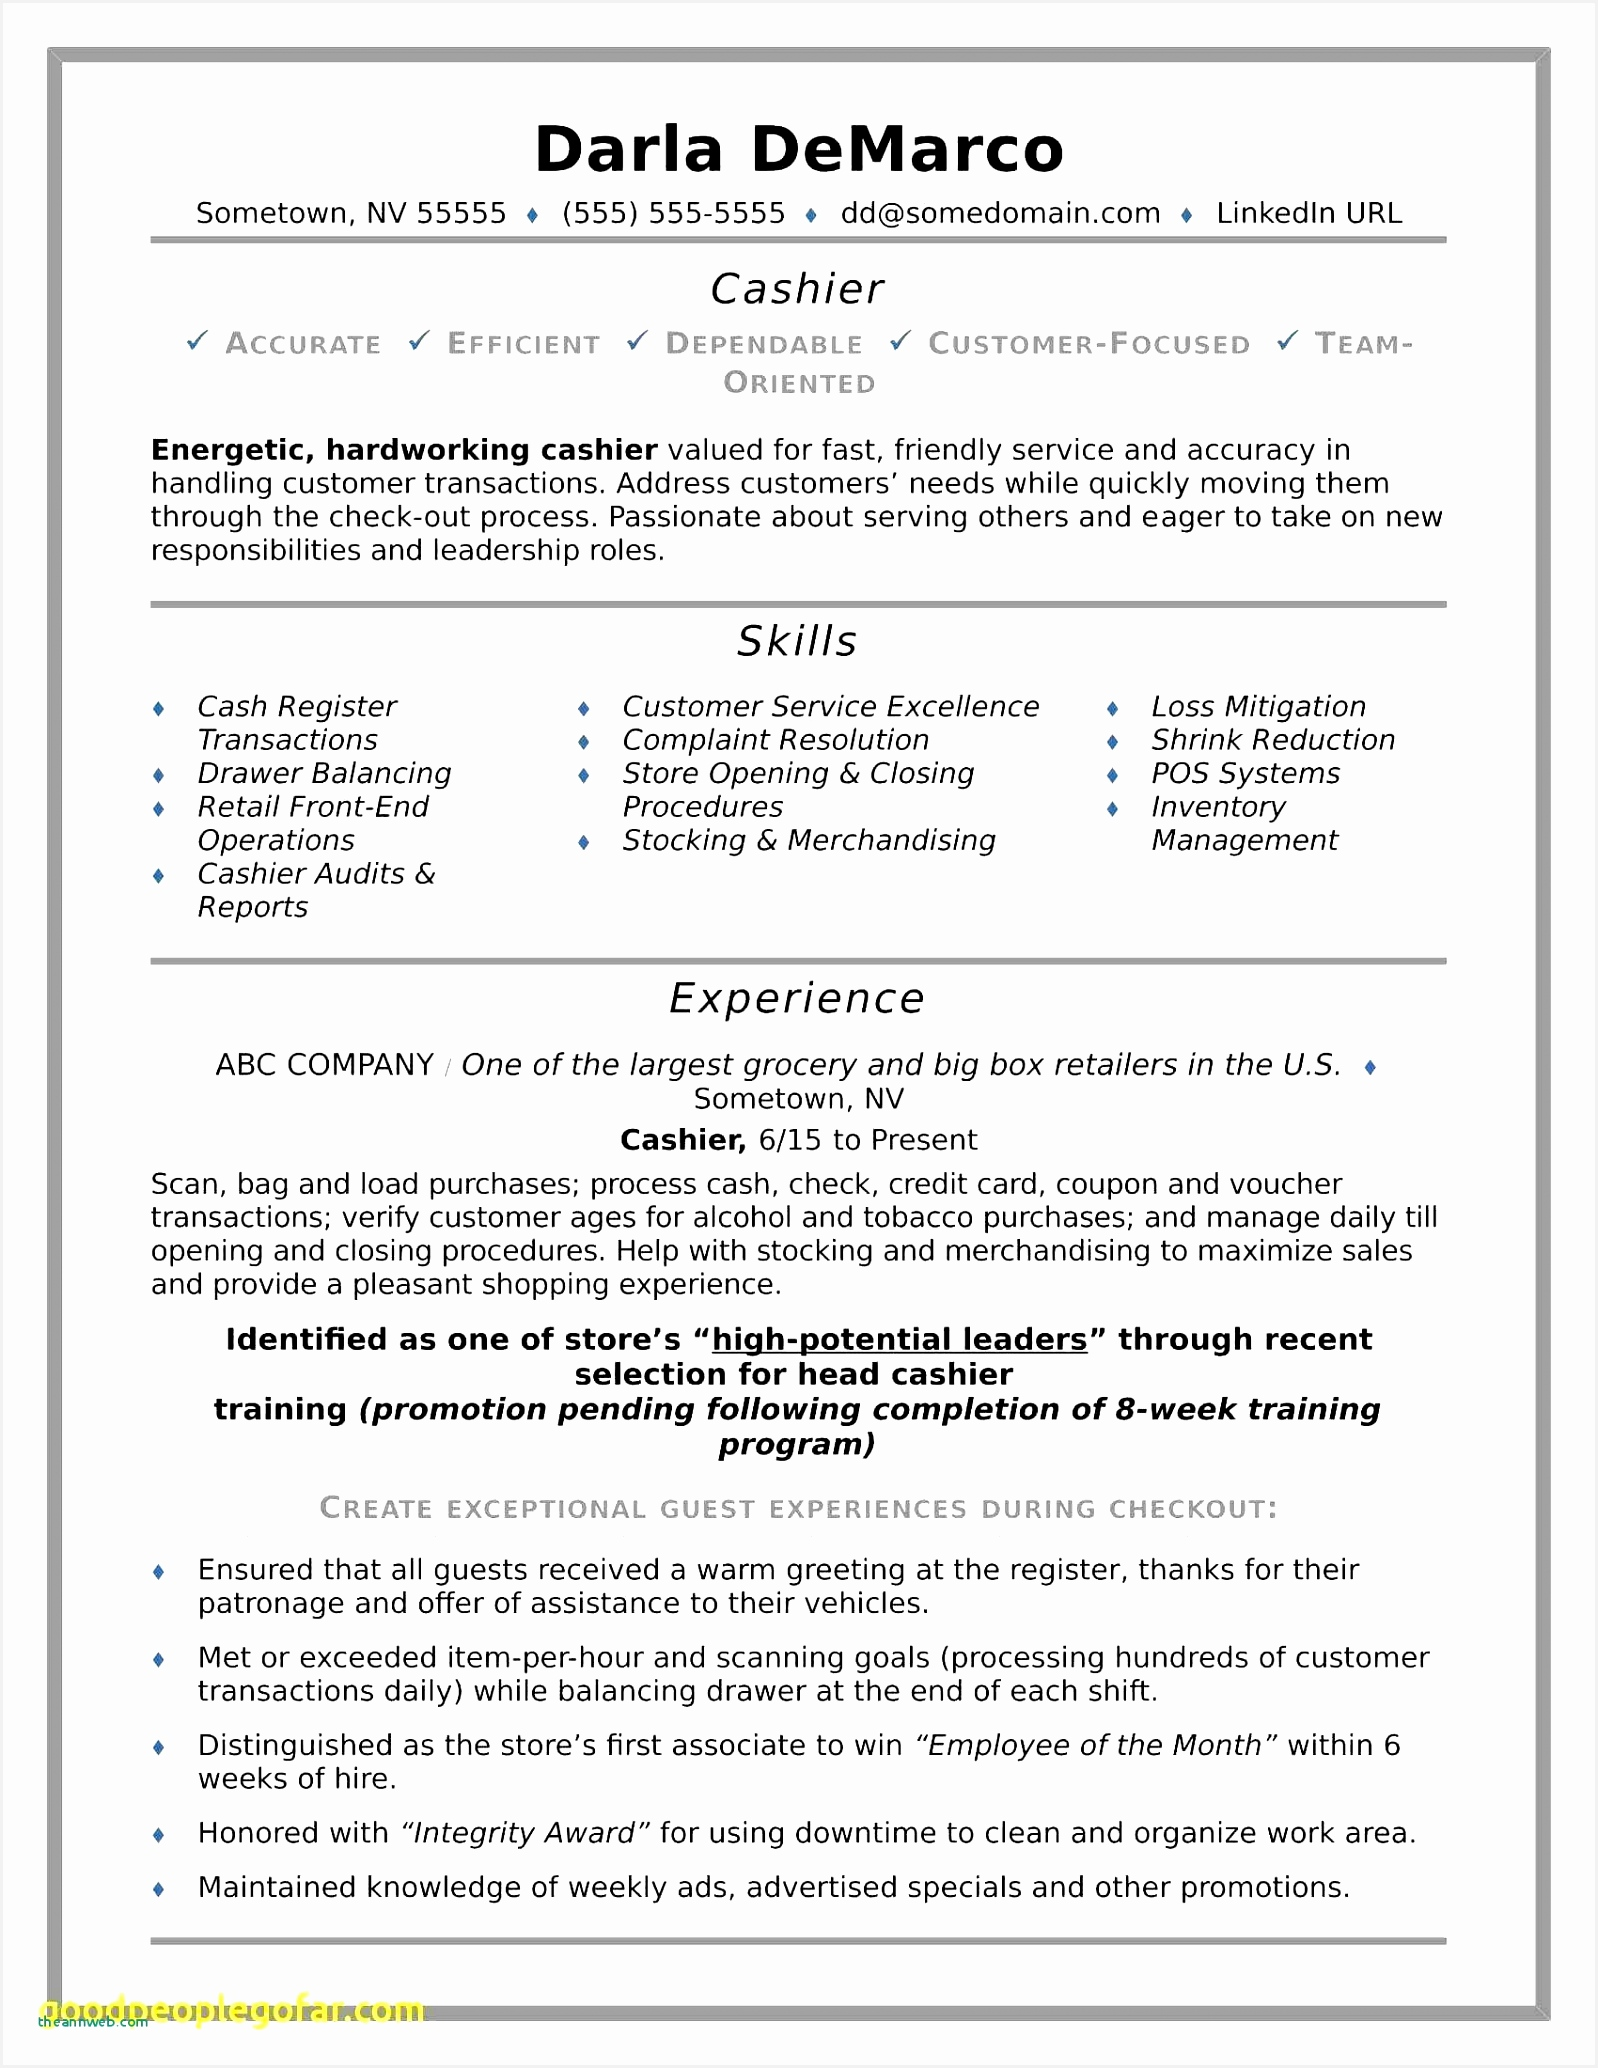 Example Of Simple Resume for Job Application Zgyvt Luxury Resume for It Job Inspirational Resume Template Samples Nanny Resume20681598